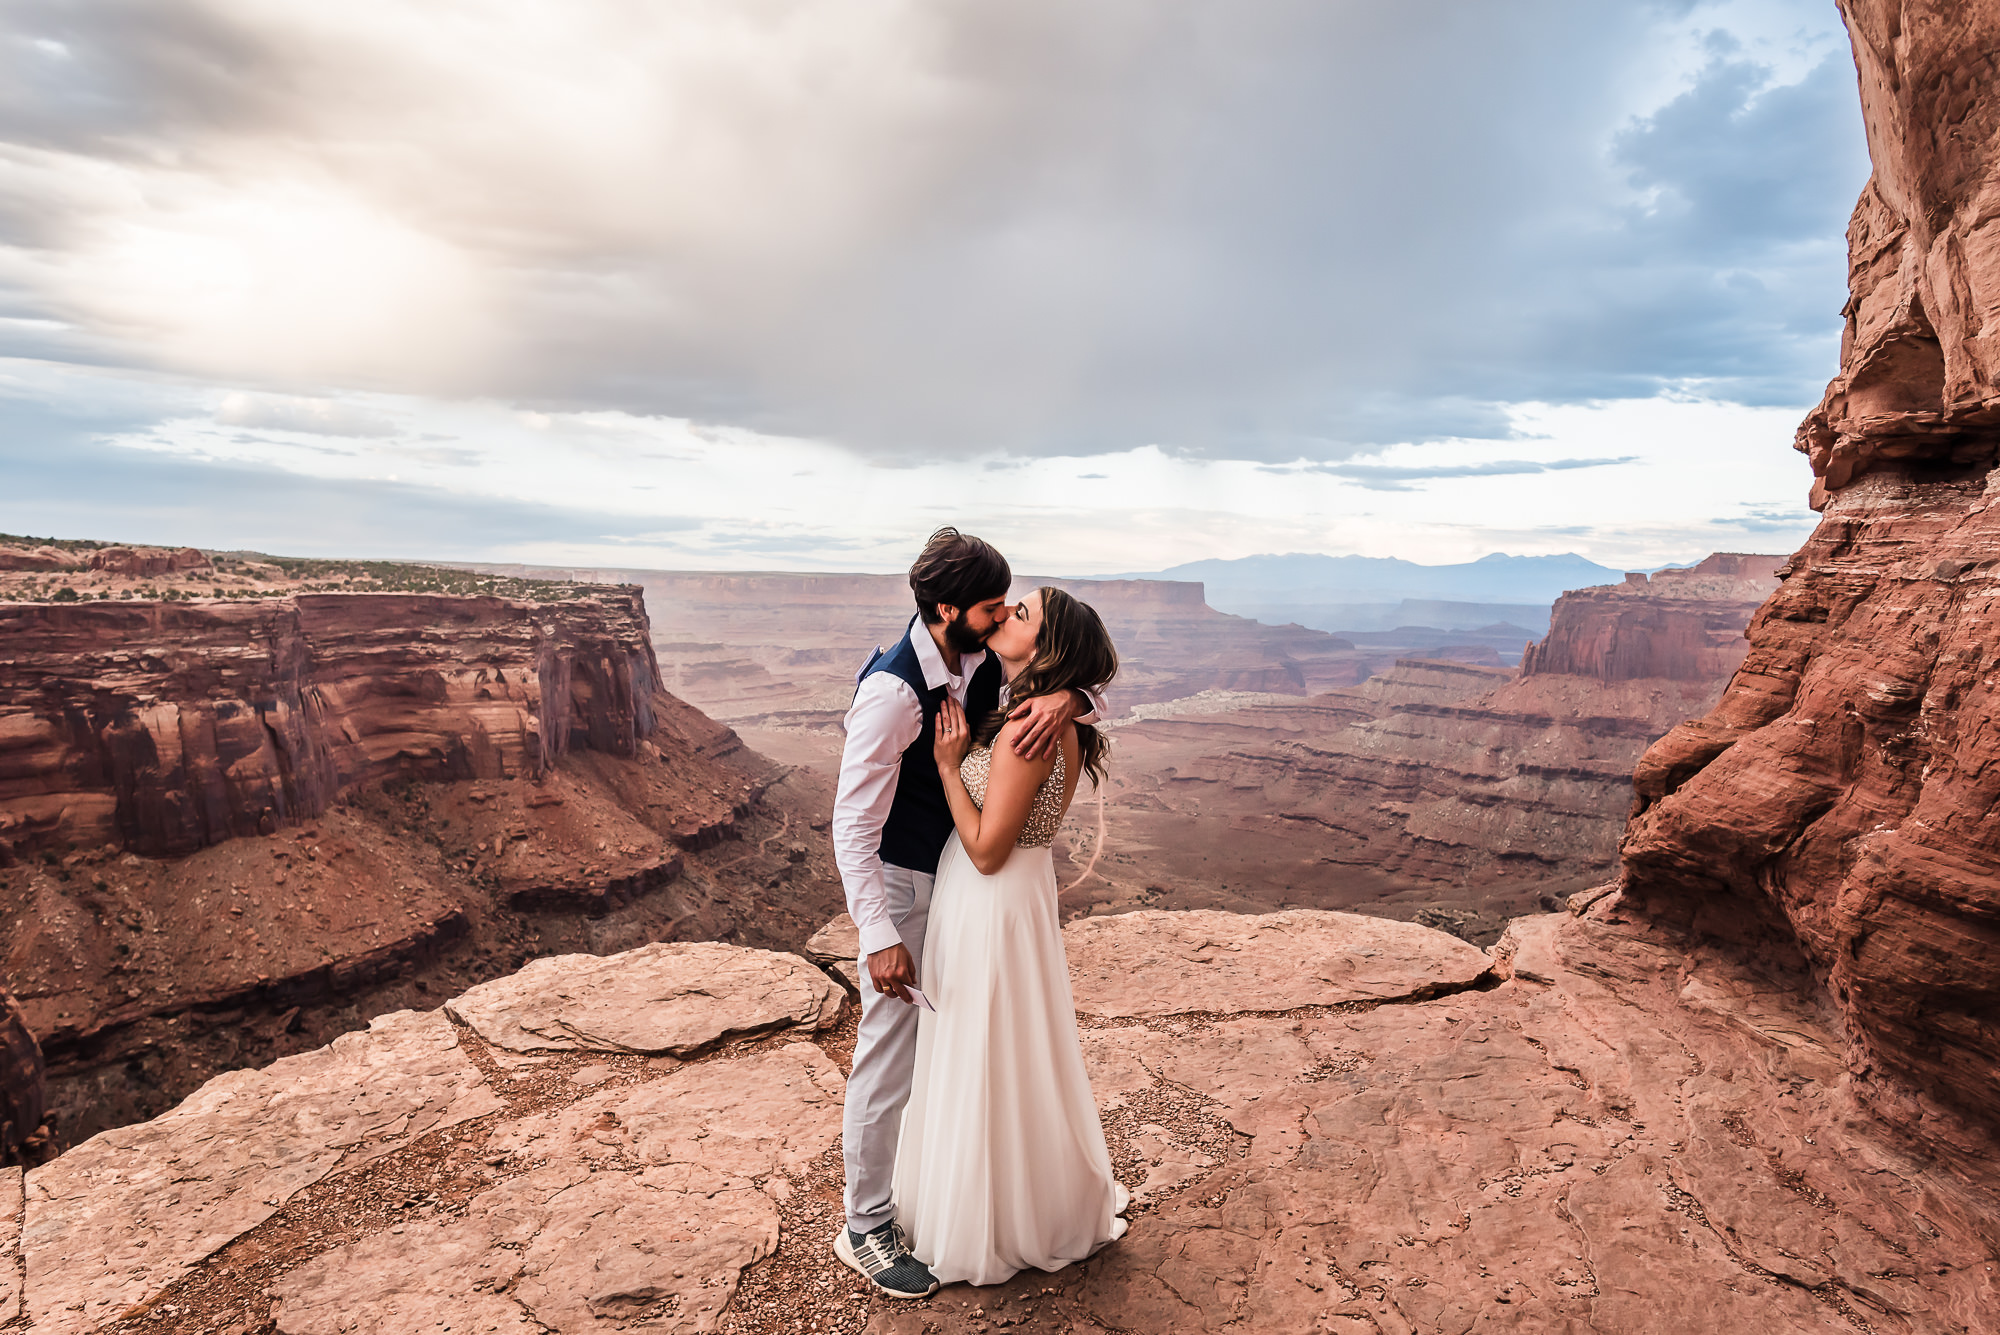 The Outlovers | Wedding photographer in Grand Junction, Colorado featured on WED West Slope - a directory for wedding vendors.